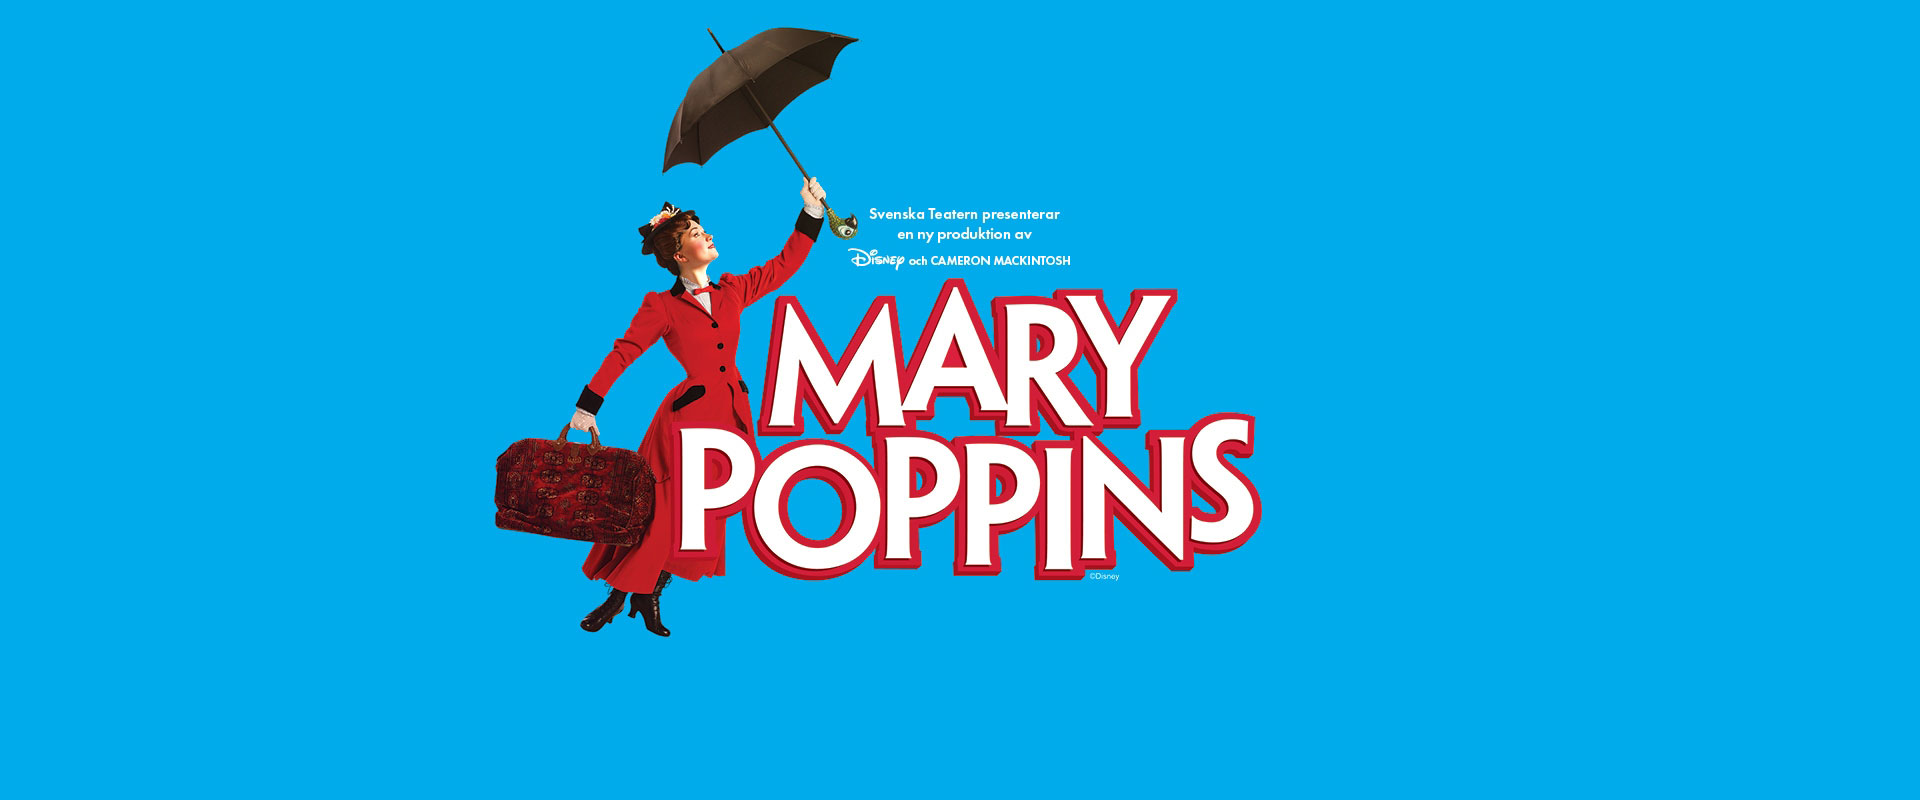 Link to event Mary Poppins